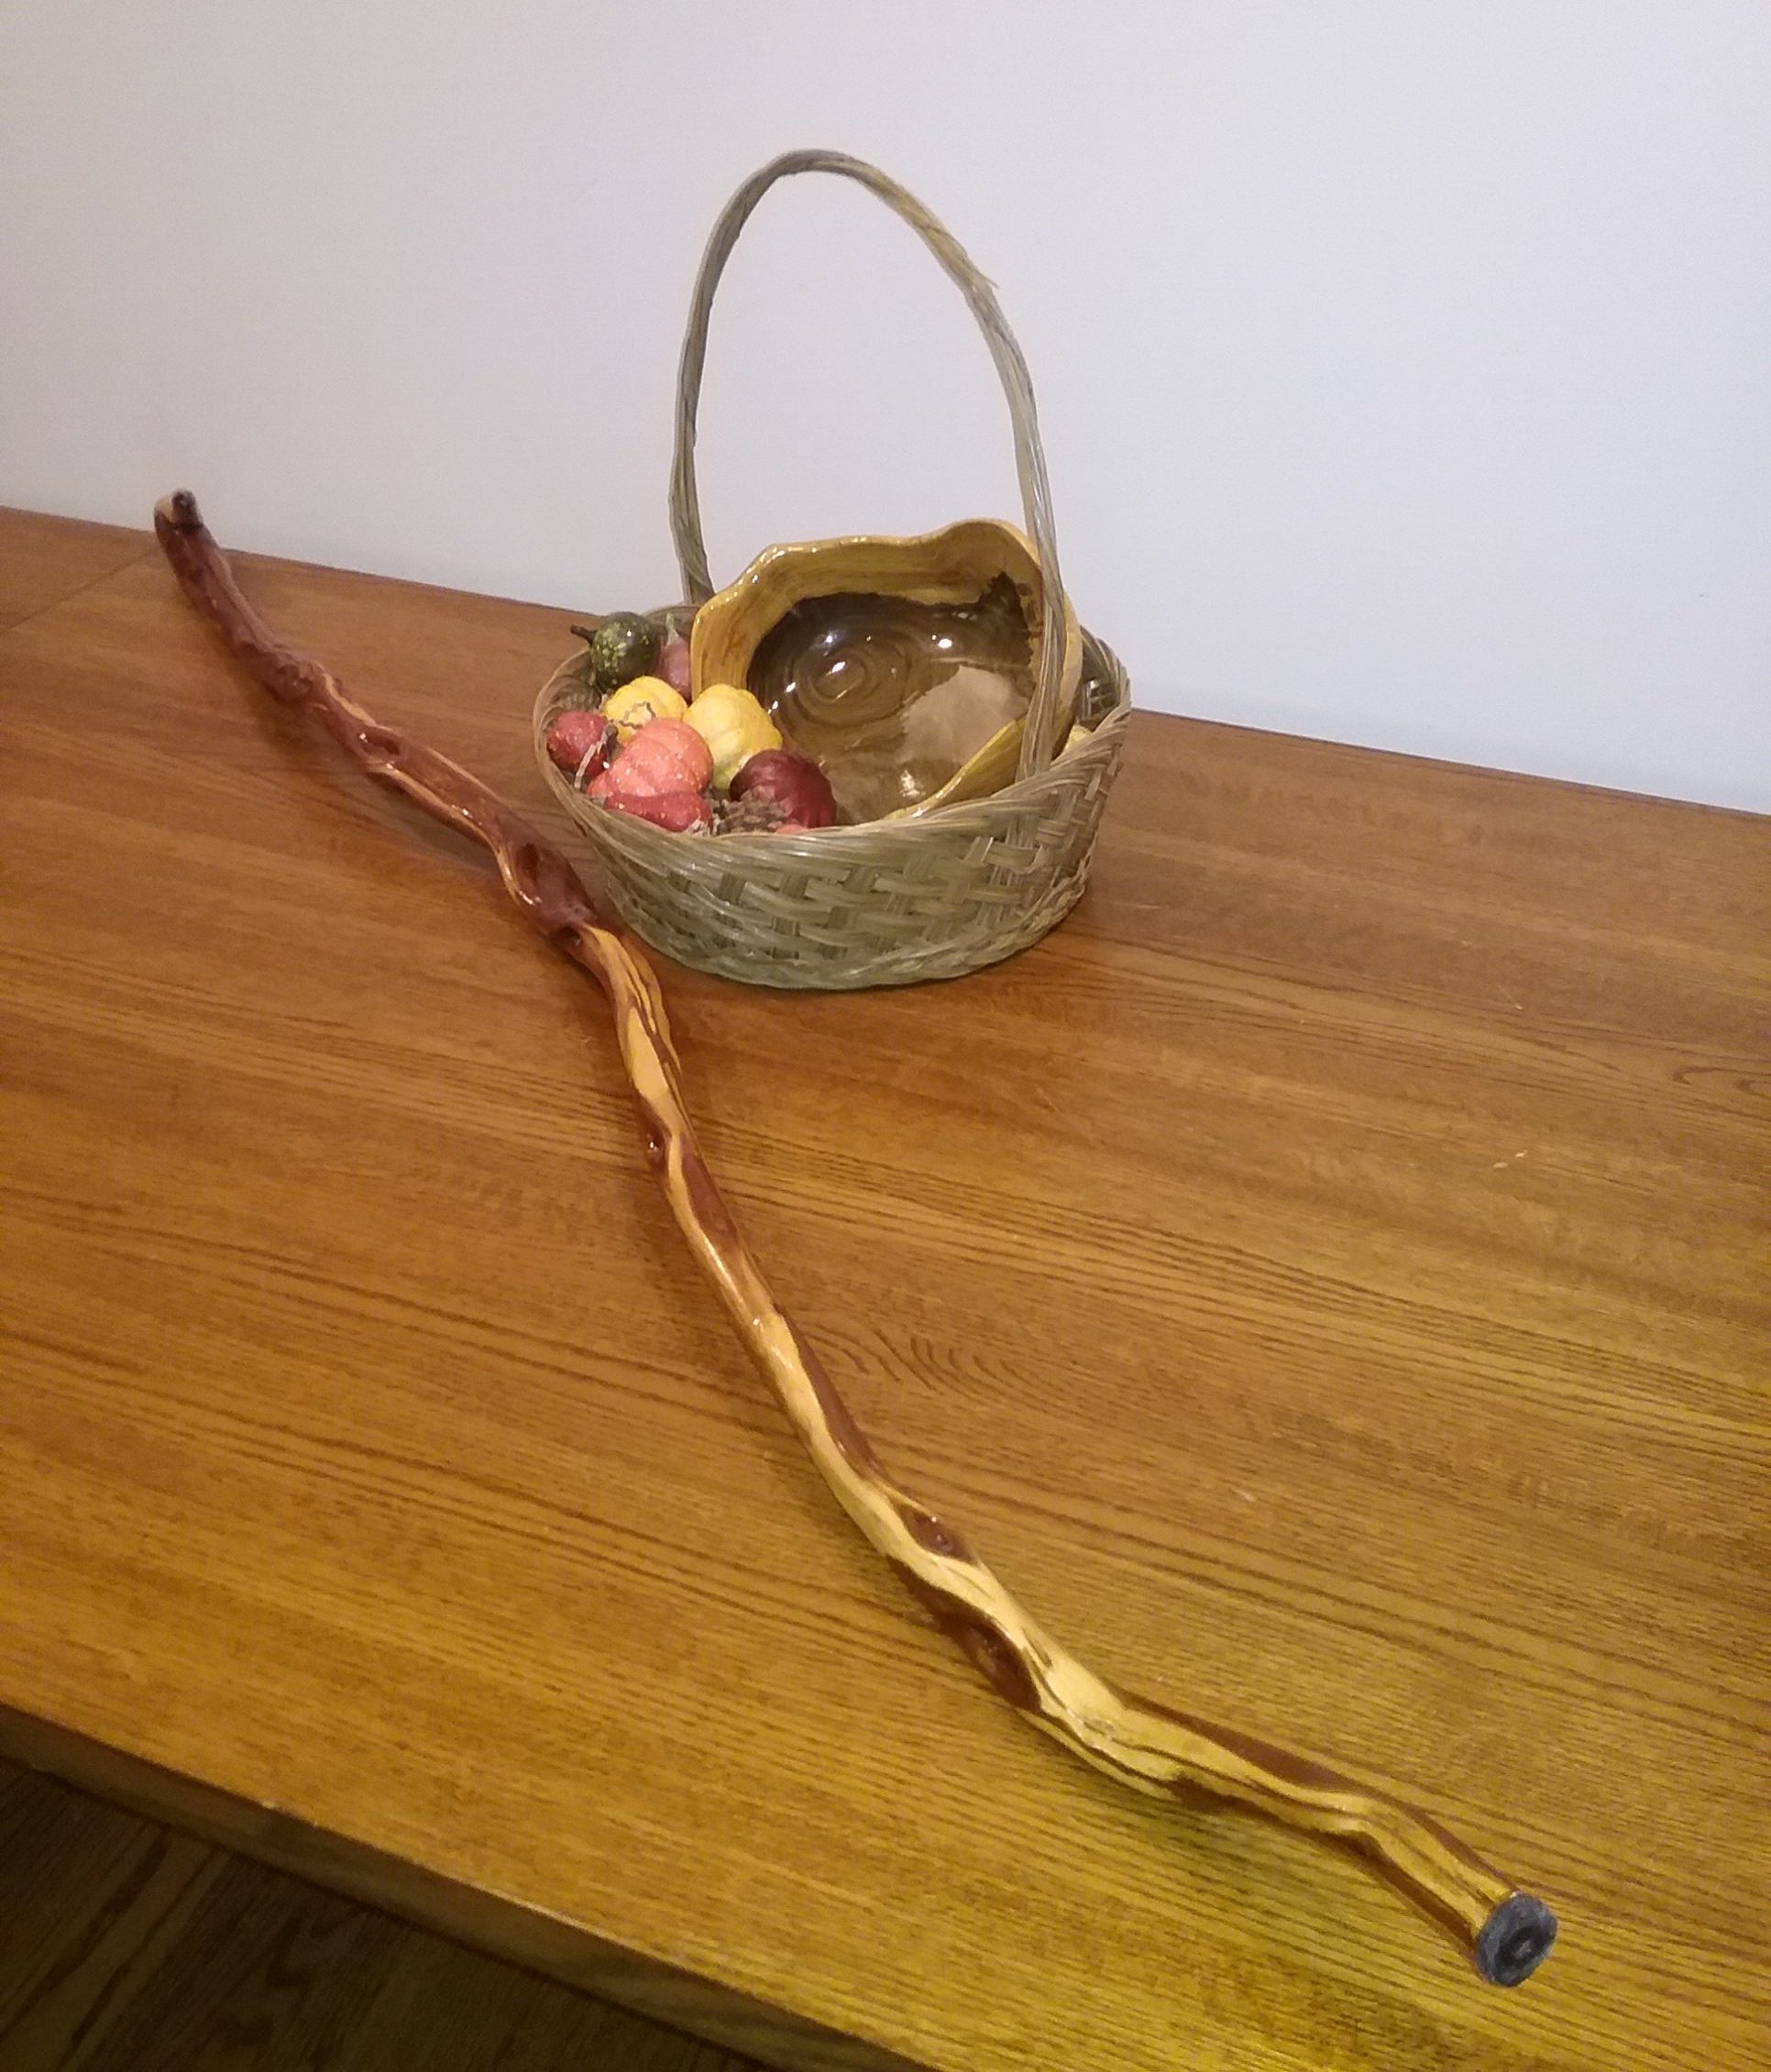 MCHS Silent Auction Item: Hand-turned wooden bowl and diamond willow walking stick.